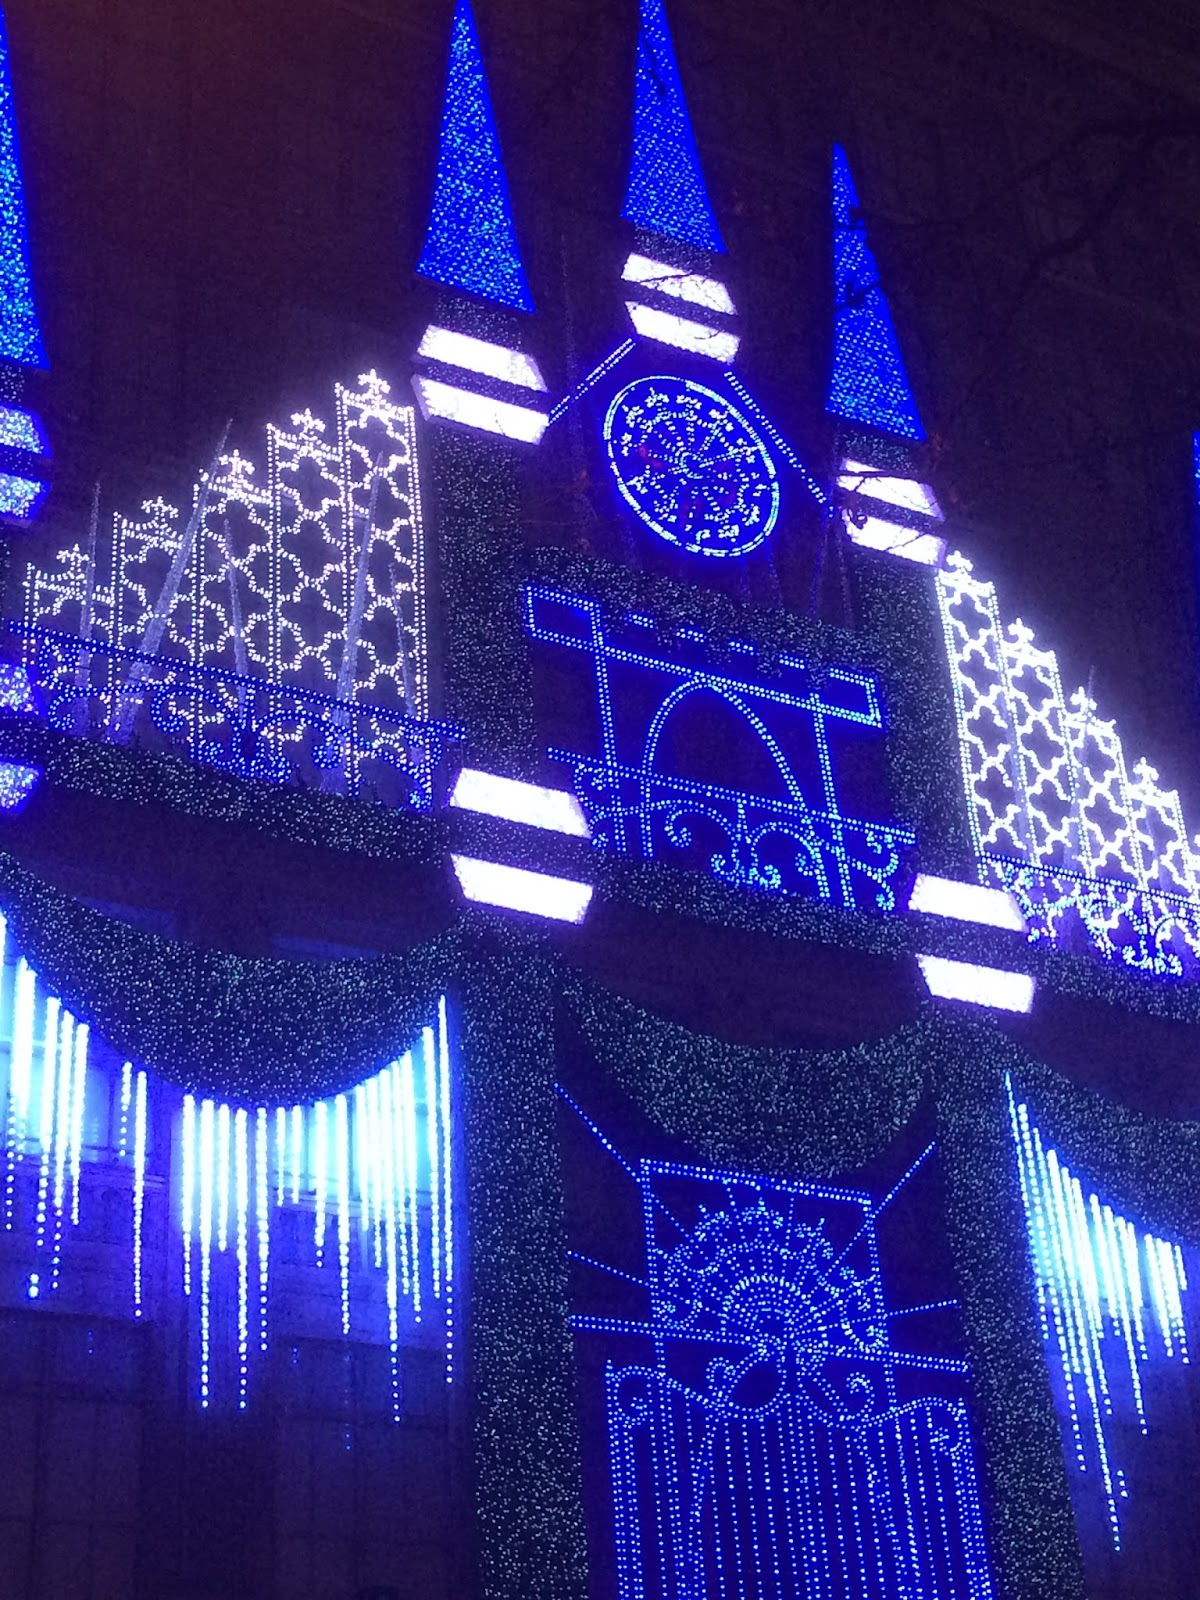 ... Fifth Avenue Facade. The Light Show Appears Above The Holiday Windows  And Occurs Every 8 Minutes. It Is Enjoyable To Watch. Here Are Some Photos,  ...